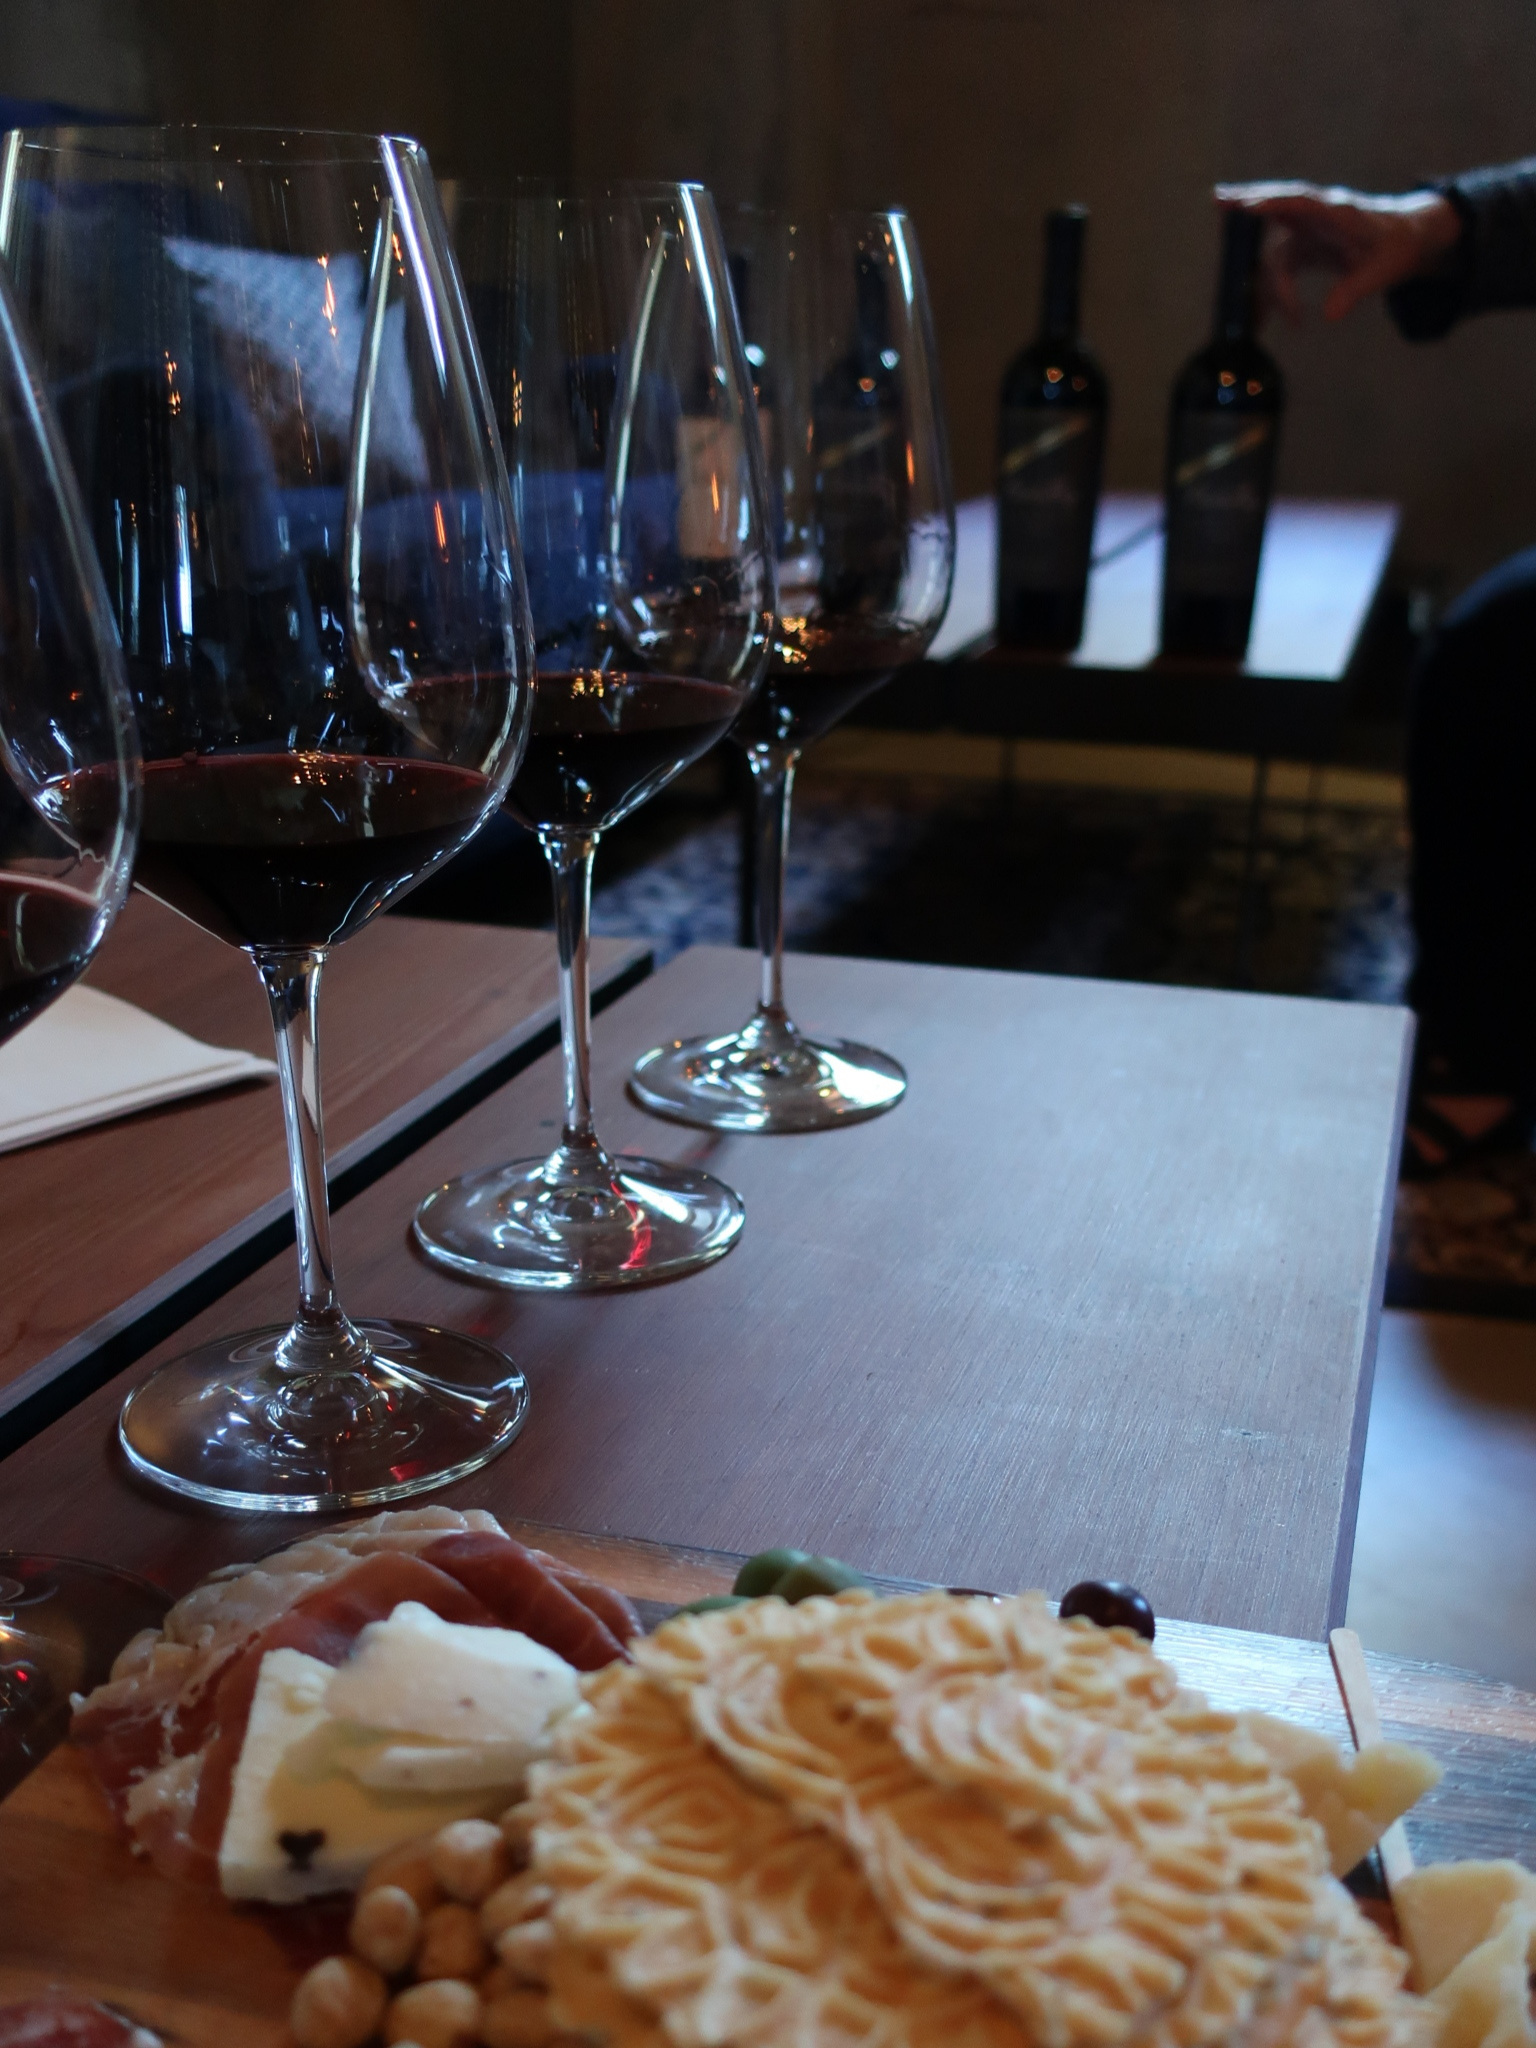 Free tour and tasting at Charles Krug Winery in Napa, thanks to Local Wally